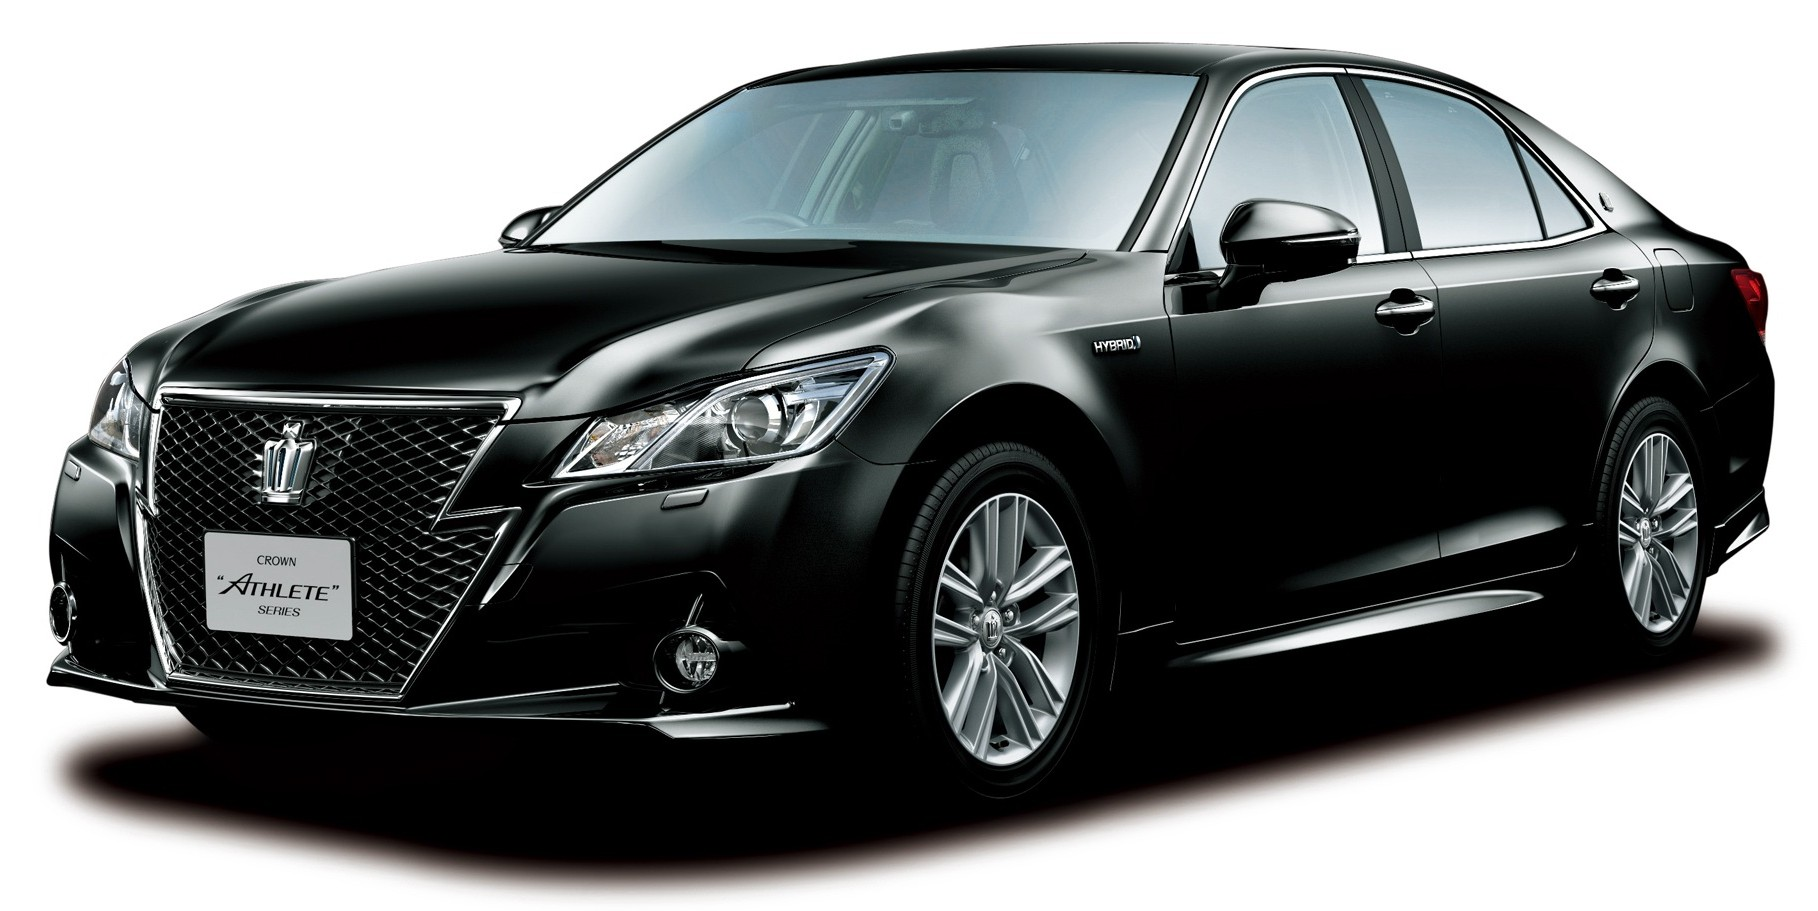 Toyota Crown 14th Gen S210 Makes Its Debut Paul Tan